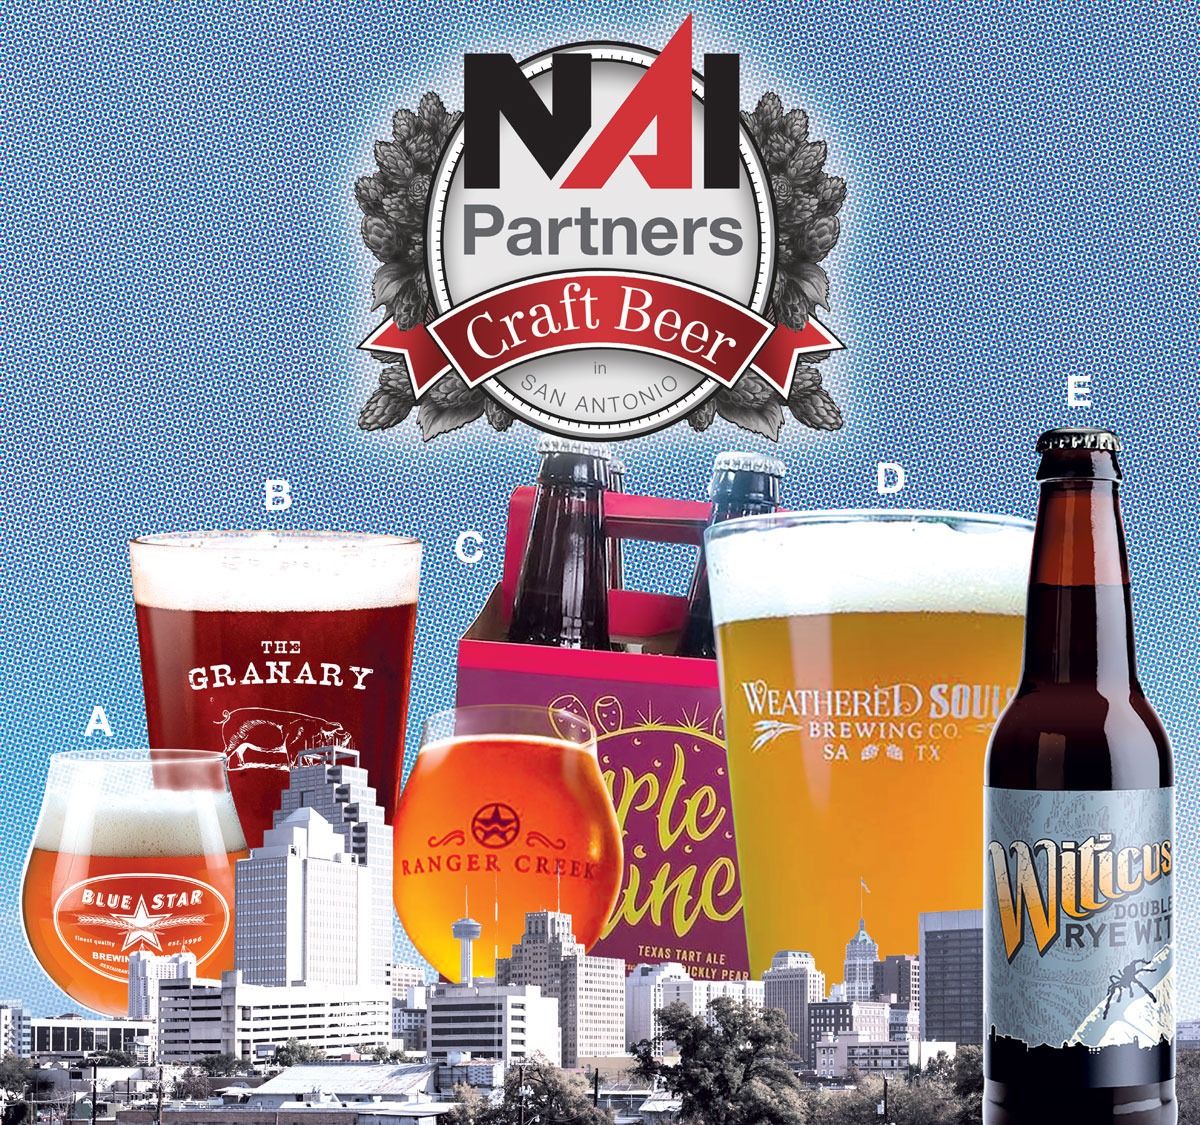 craft beer in san antonio nai partners